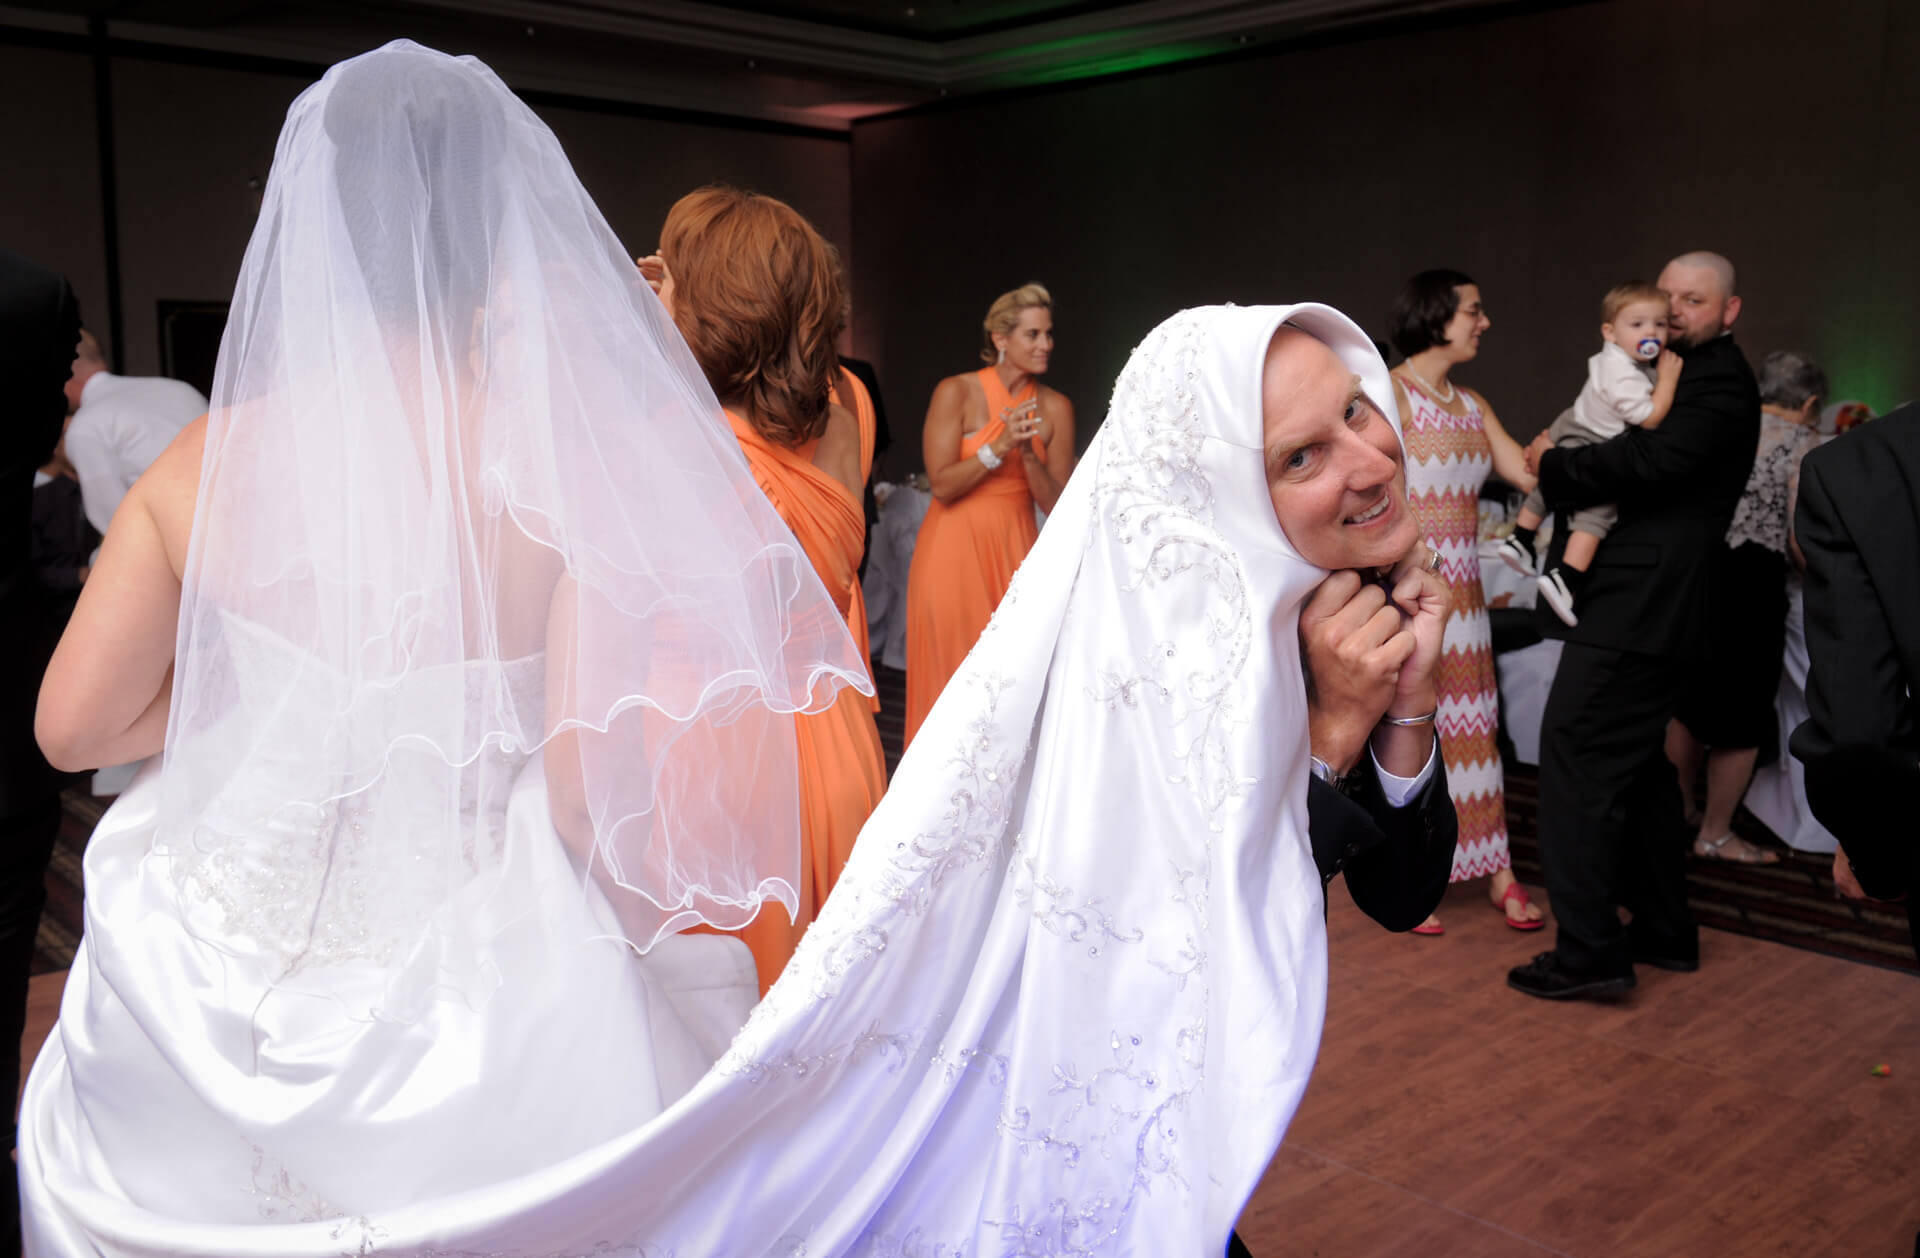 Candid wedding photography showing a groomsman playing with the bride's train during a wedding reception in downtown Detroit, Michigan.